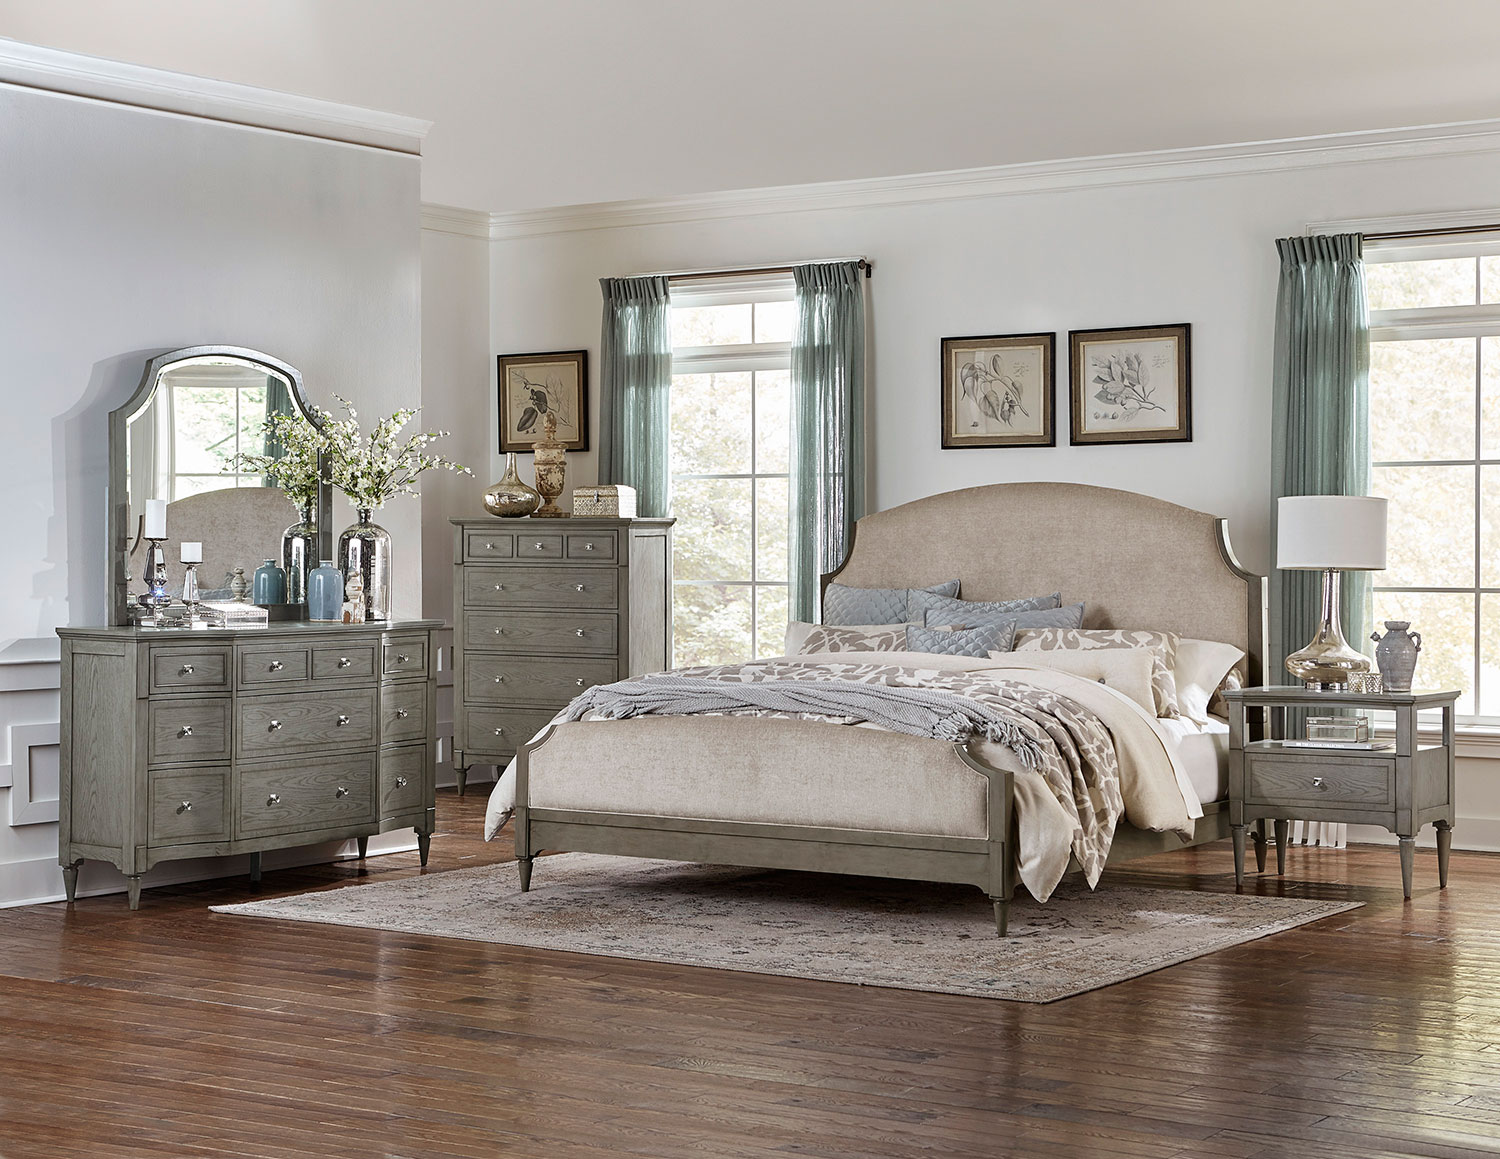 Homelegance Albright Upholstered Bedroom Set - Barnwood Grey